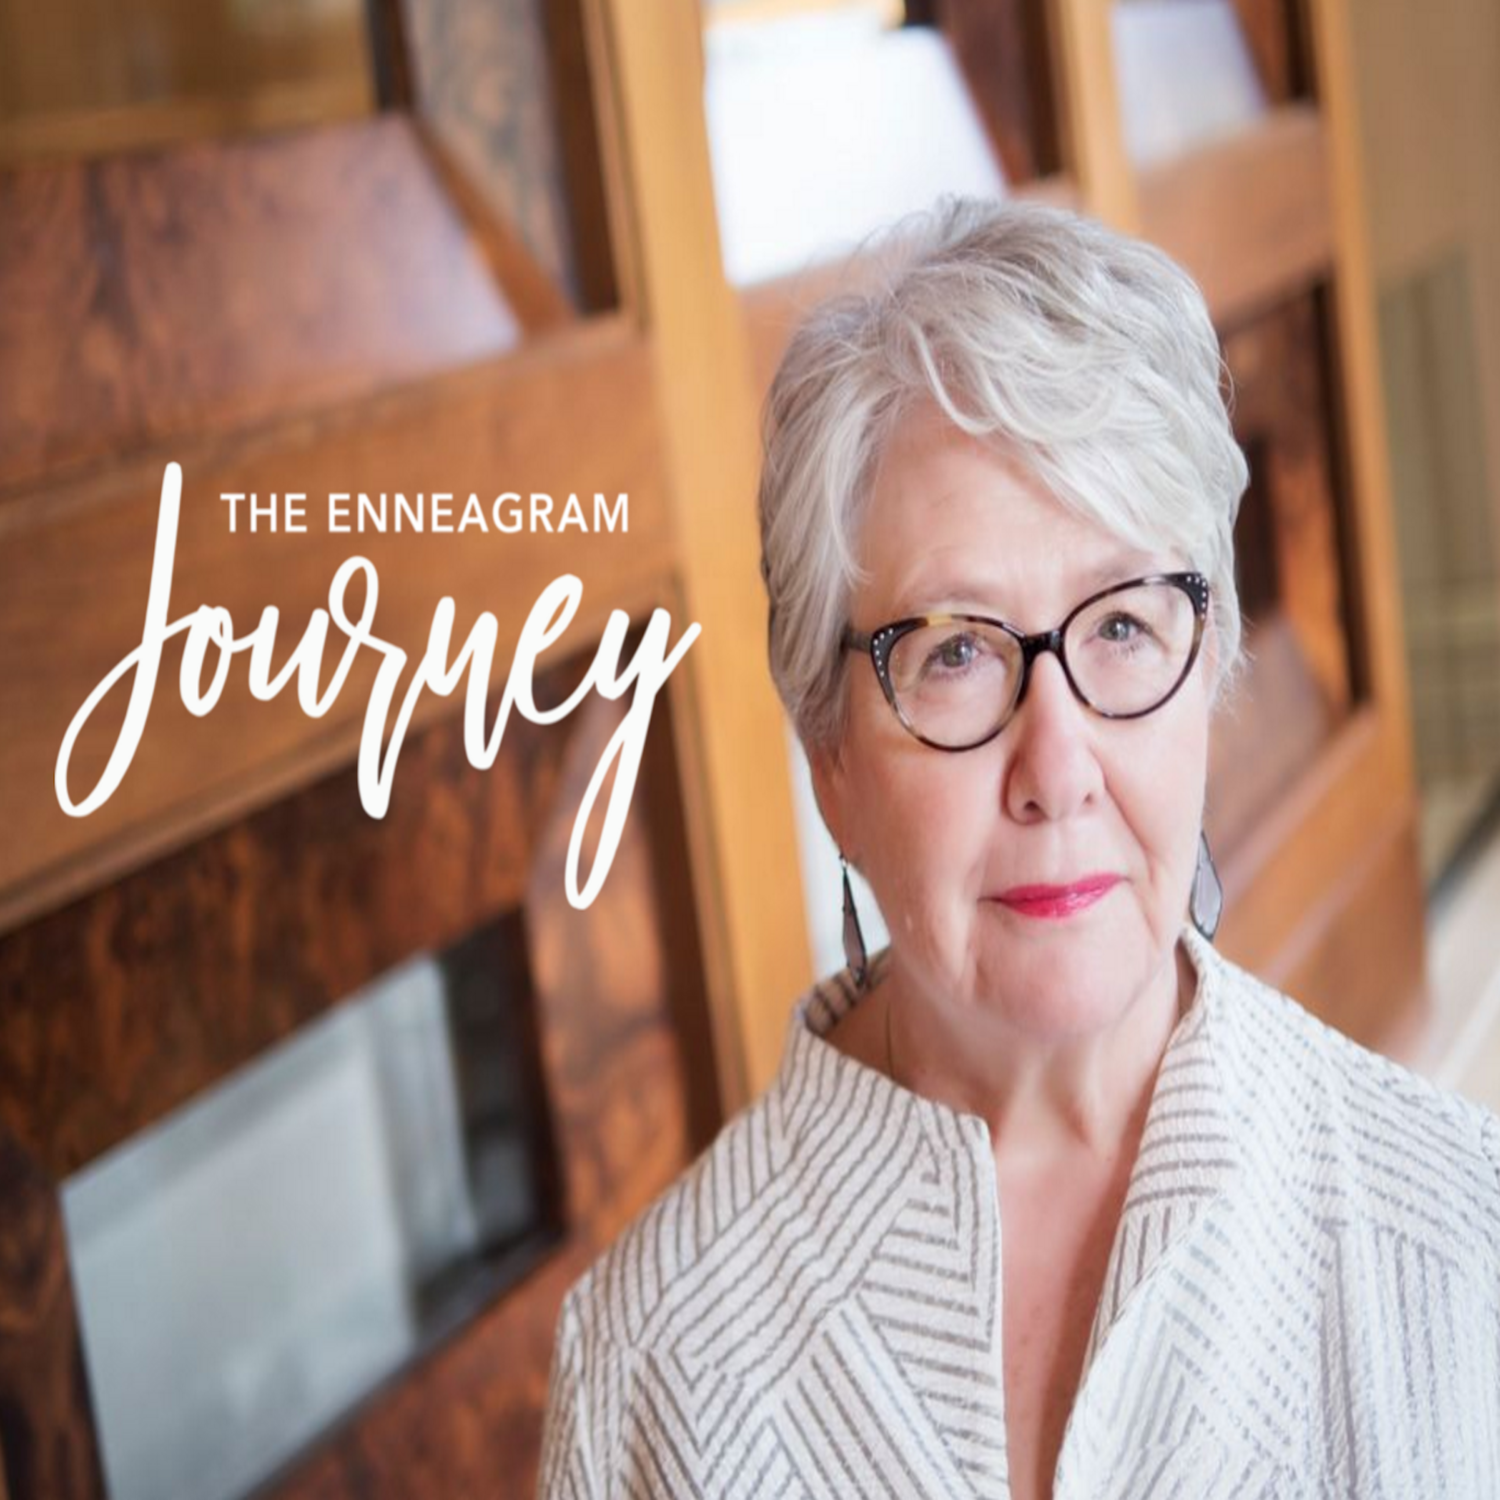 The Enneagram Journey